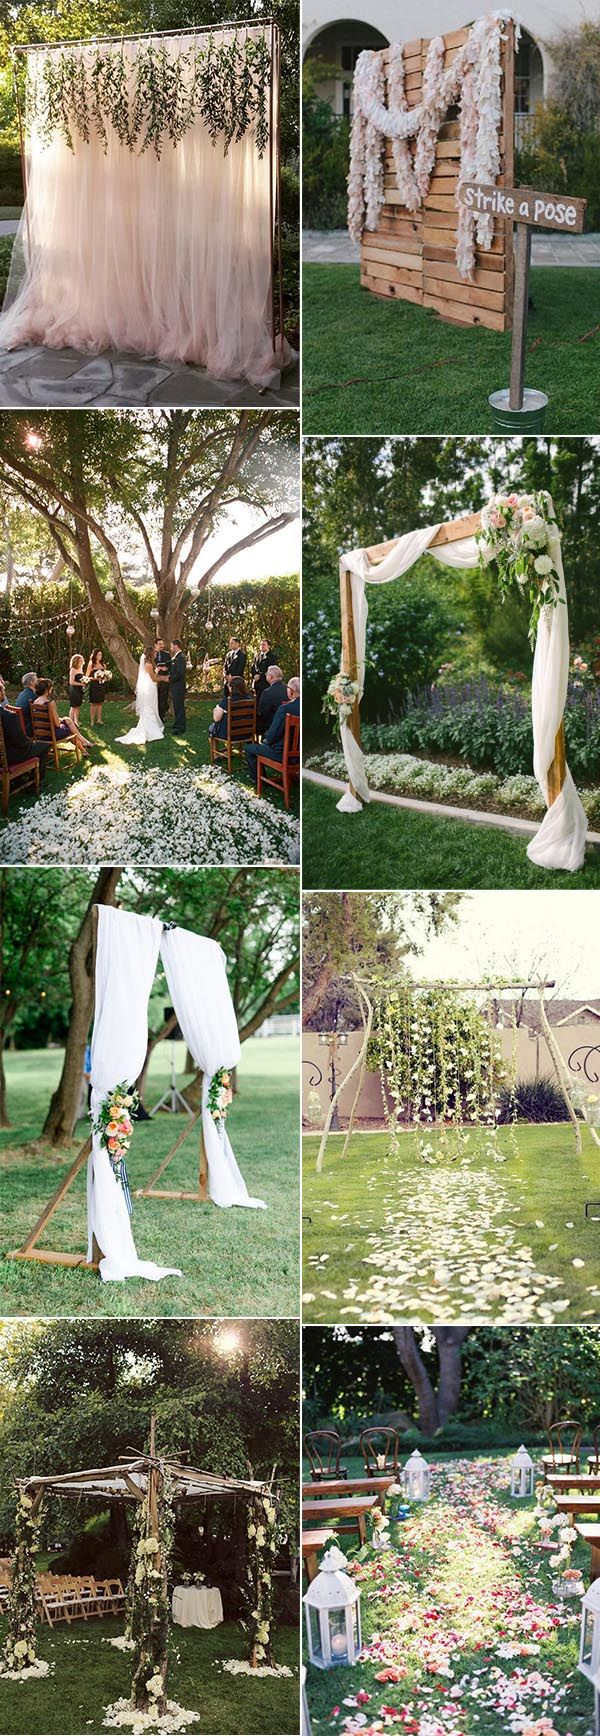 sweet ideas for intimate backyard outdoor weddings wedding